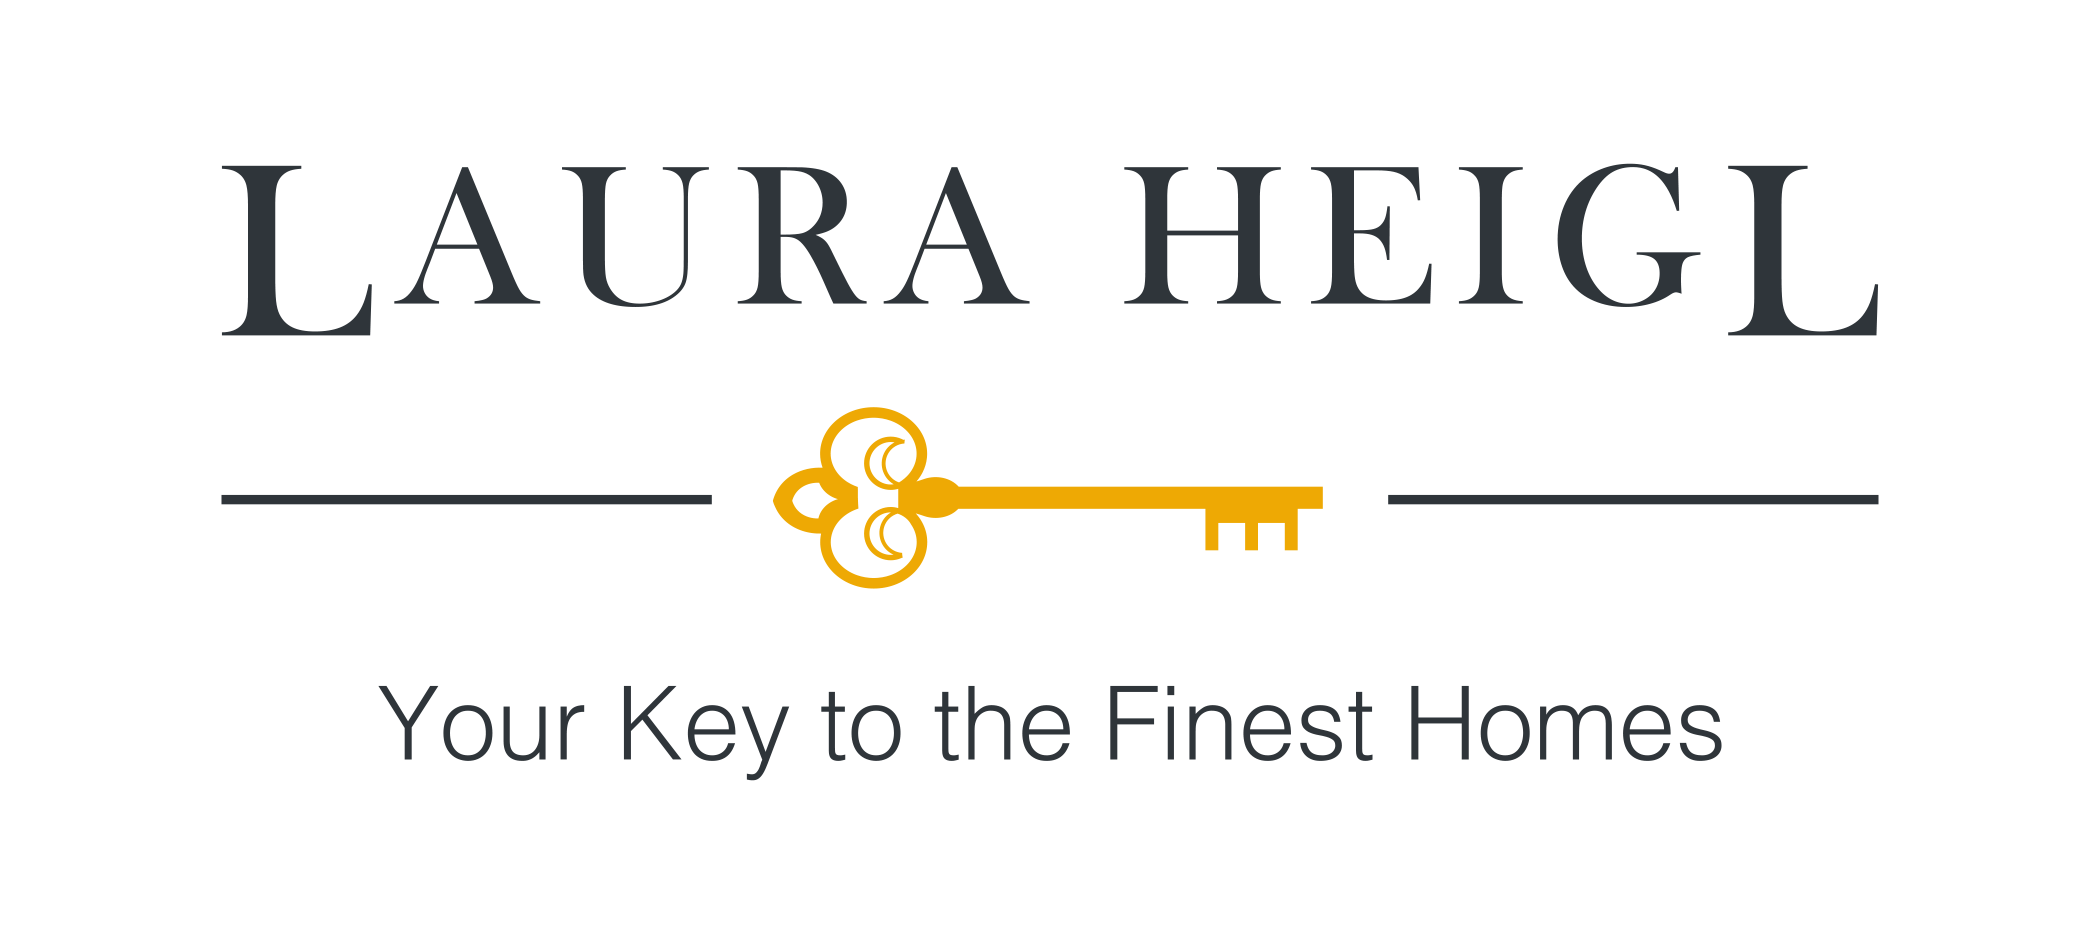 Keys To Fine Homes